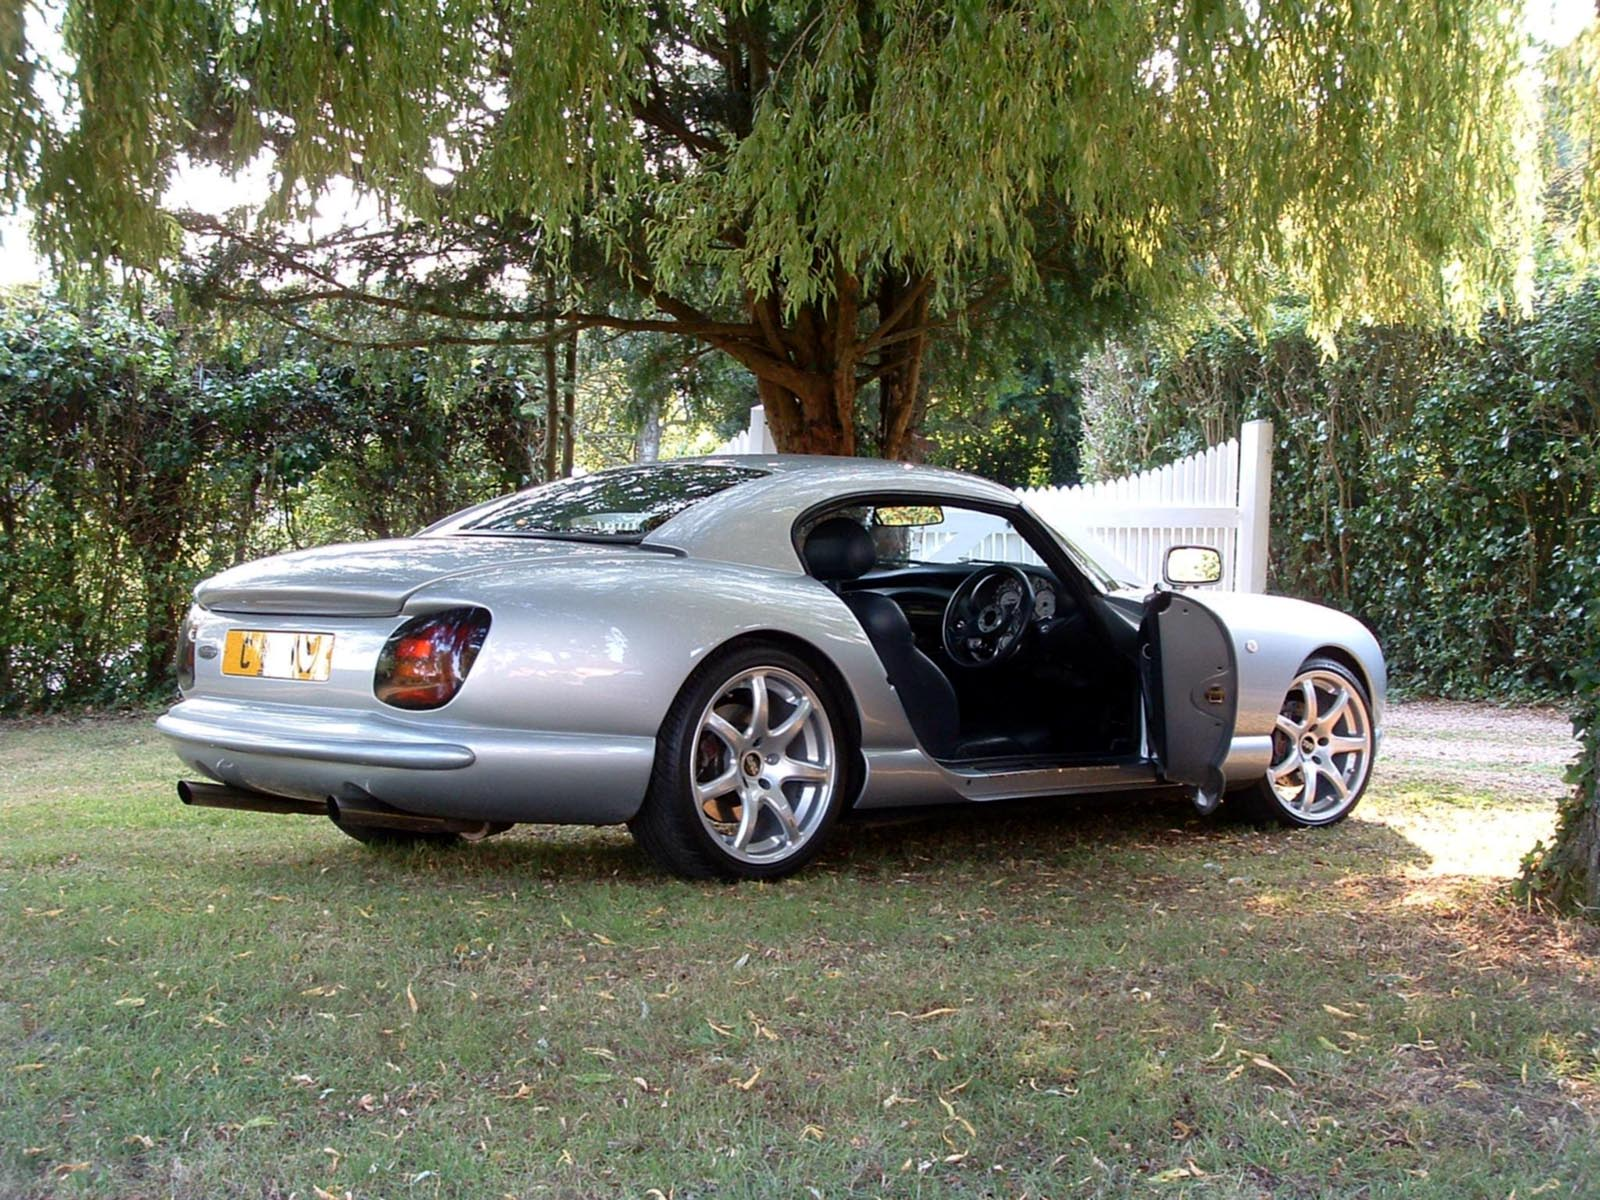 tvr griffith parts for sale used 1998 tvr griffith 500 v8. Black Bedroom Furniture Sets. Home Design Ideas